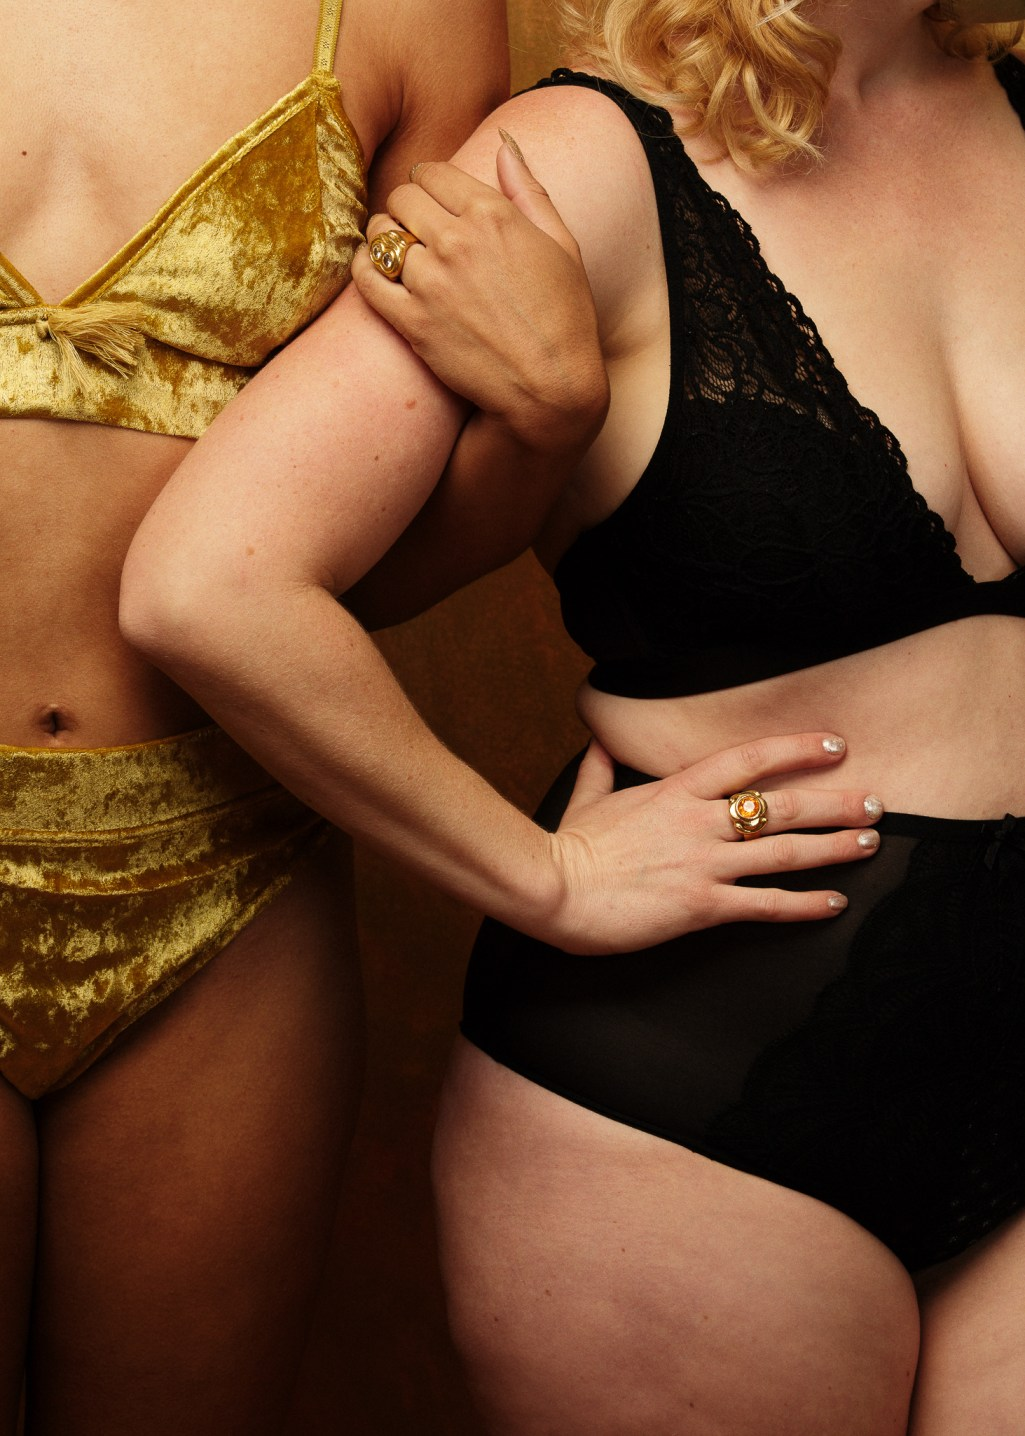 Body positive lingerie photography for women. By Oakland boudoir photographer Ella Sophie. Women with arms linked together.